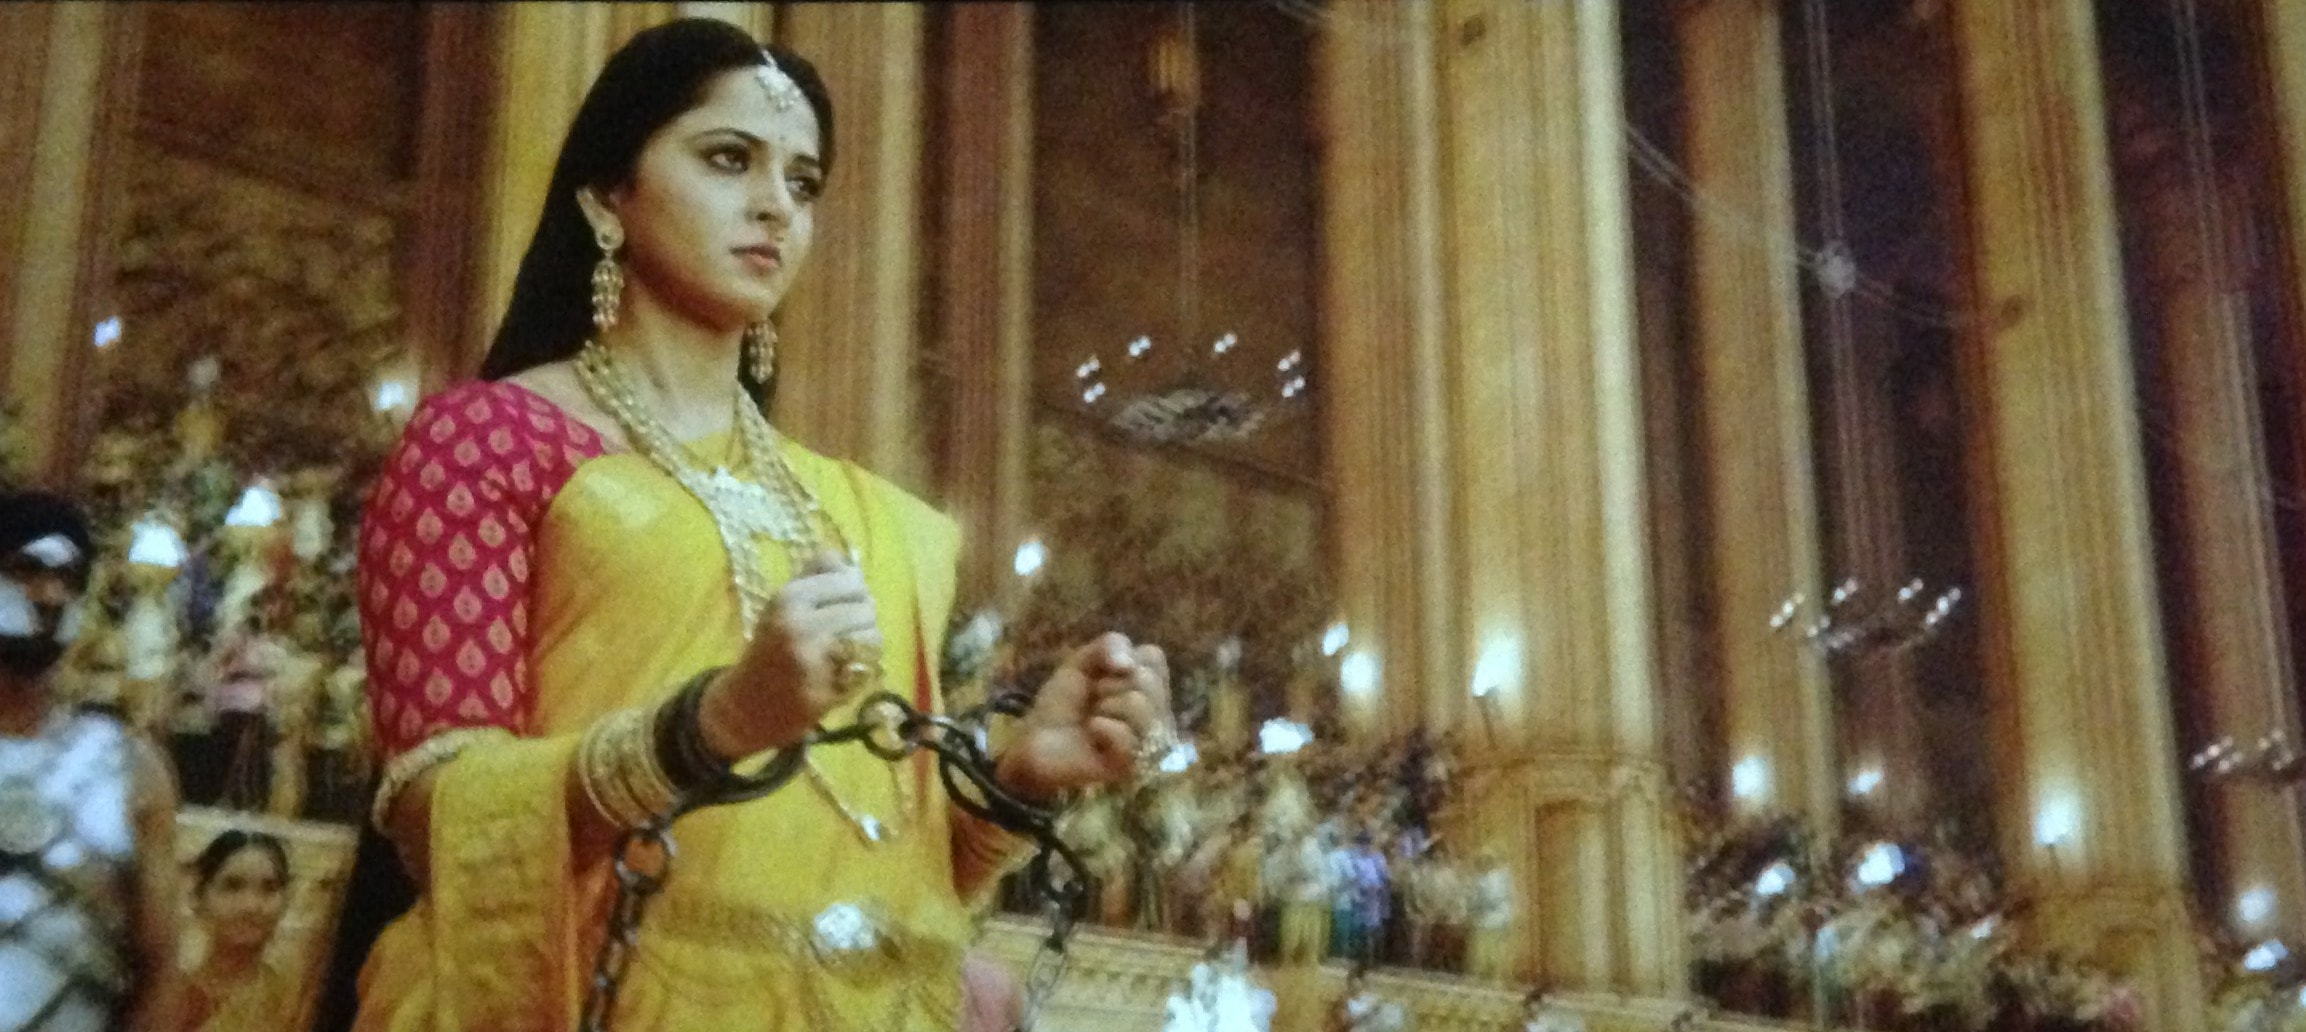 Anushka Shetty yellow saree in bahubali 2 The conclusion, Anushka Shetty handcuffed scene in bahubali 2